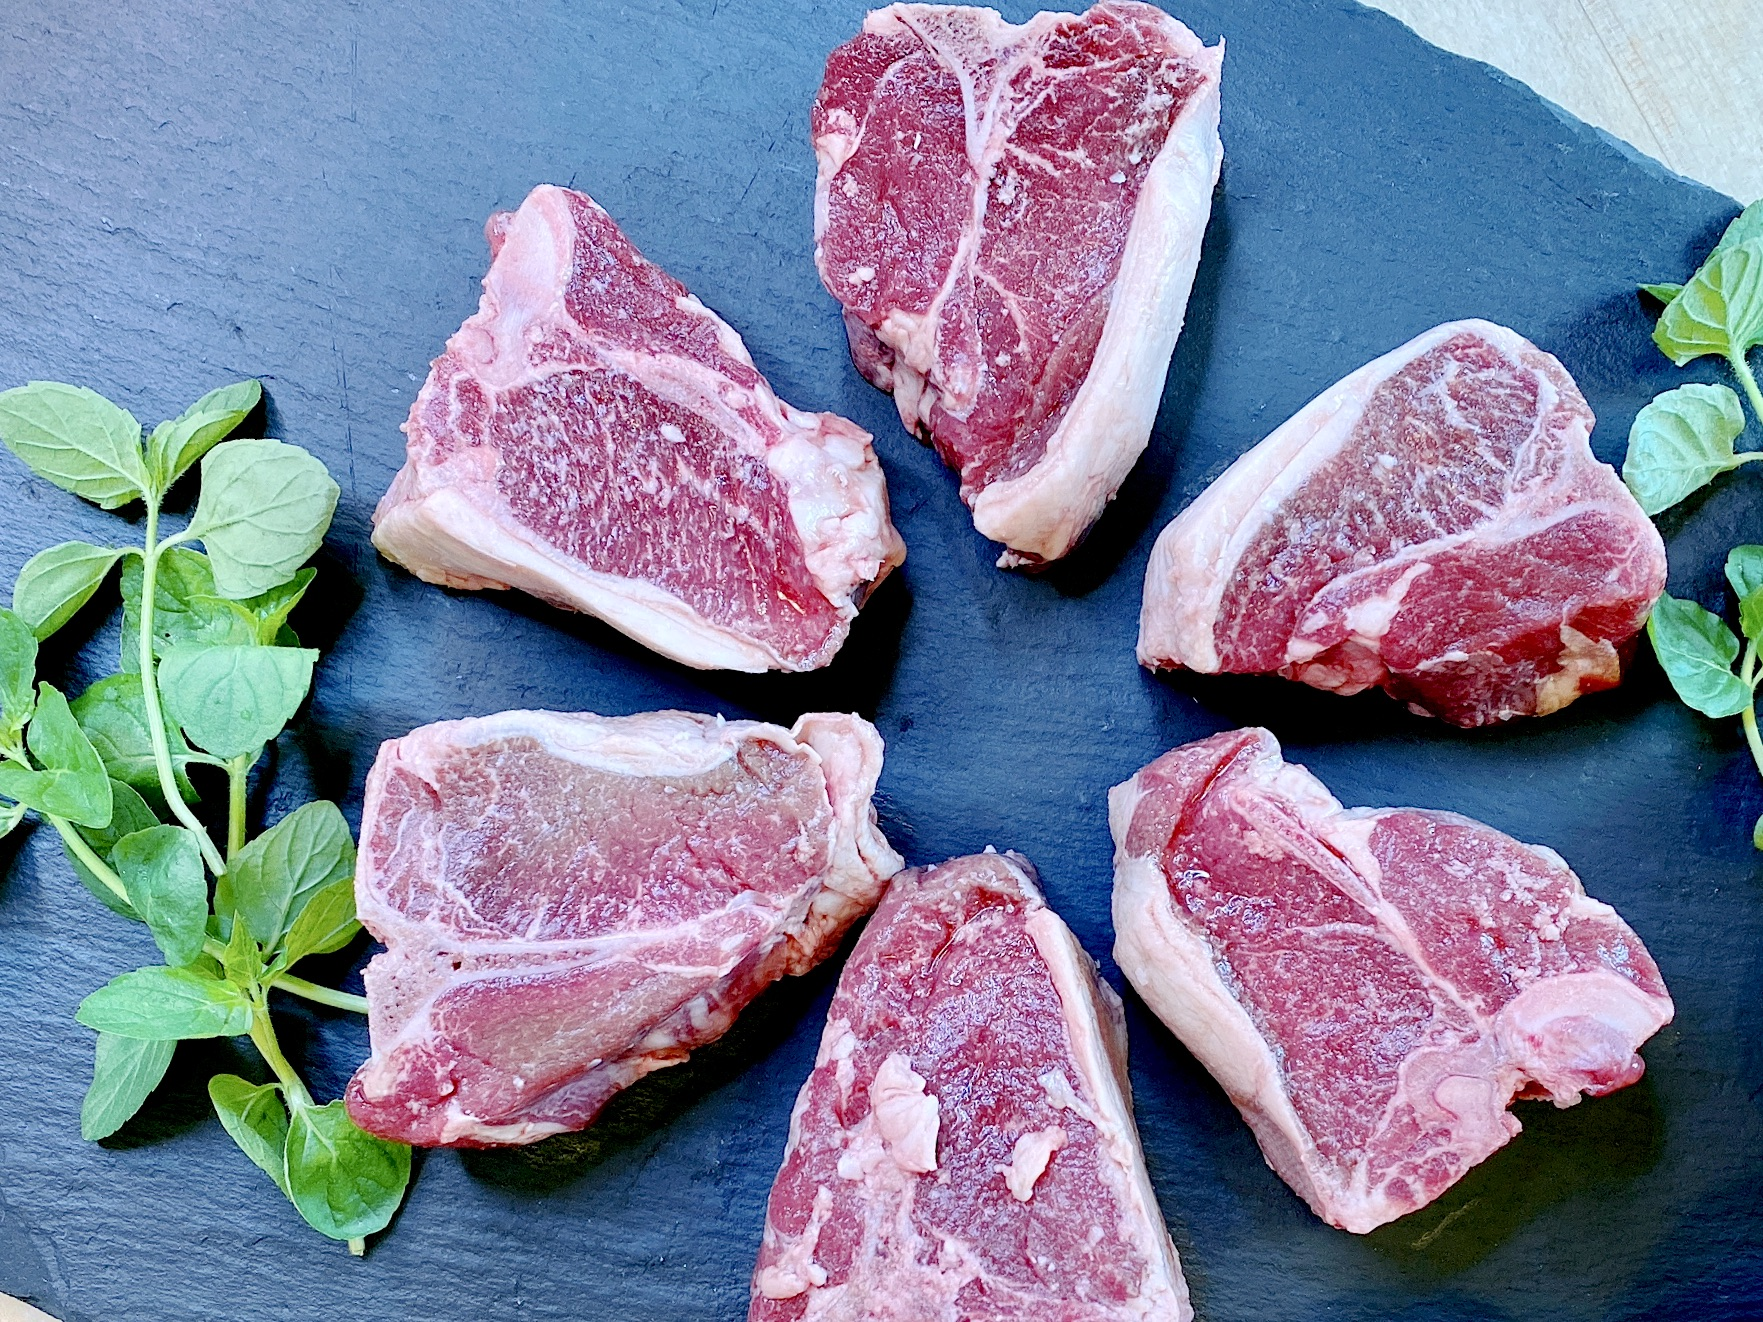 uncooked lamb loin chops from Perdue Farms and Niman Ranch